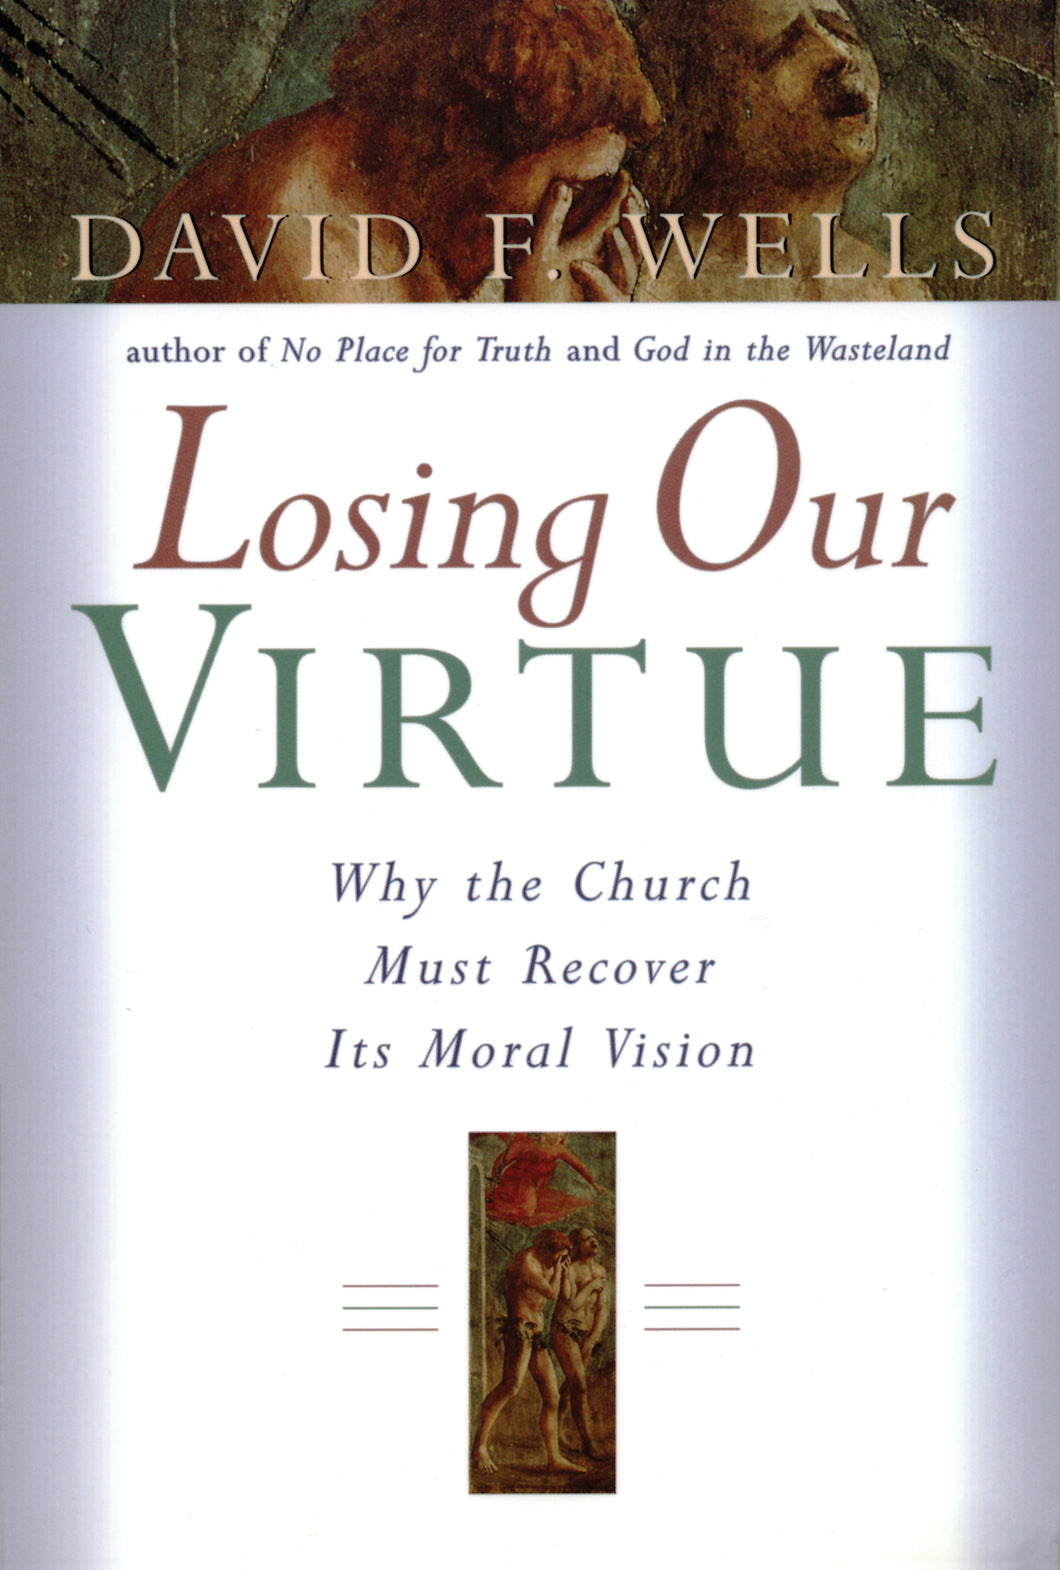 Losing Our Virtue: Why the Church Must Recover Its Moral Vision — Paperback